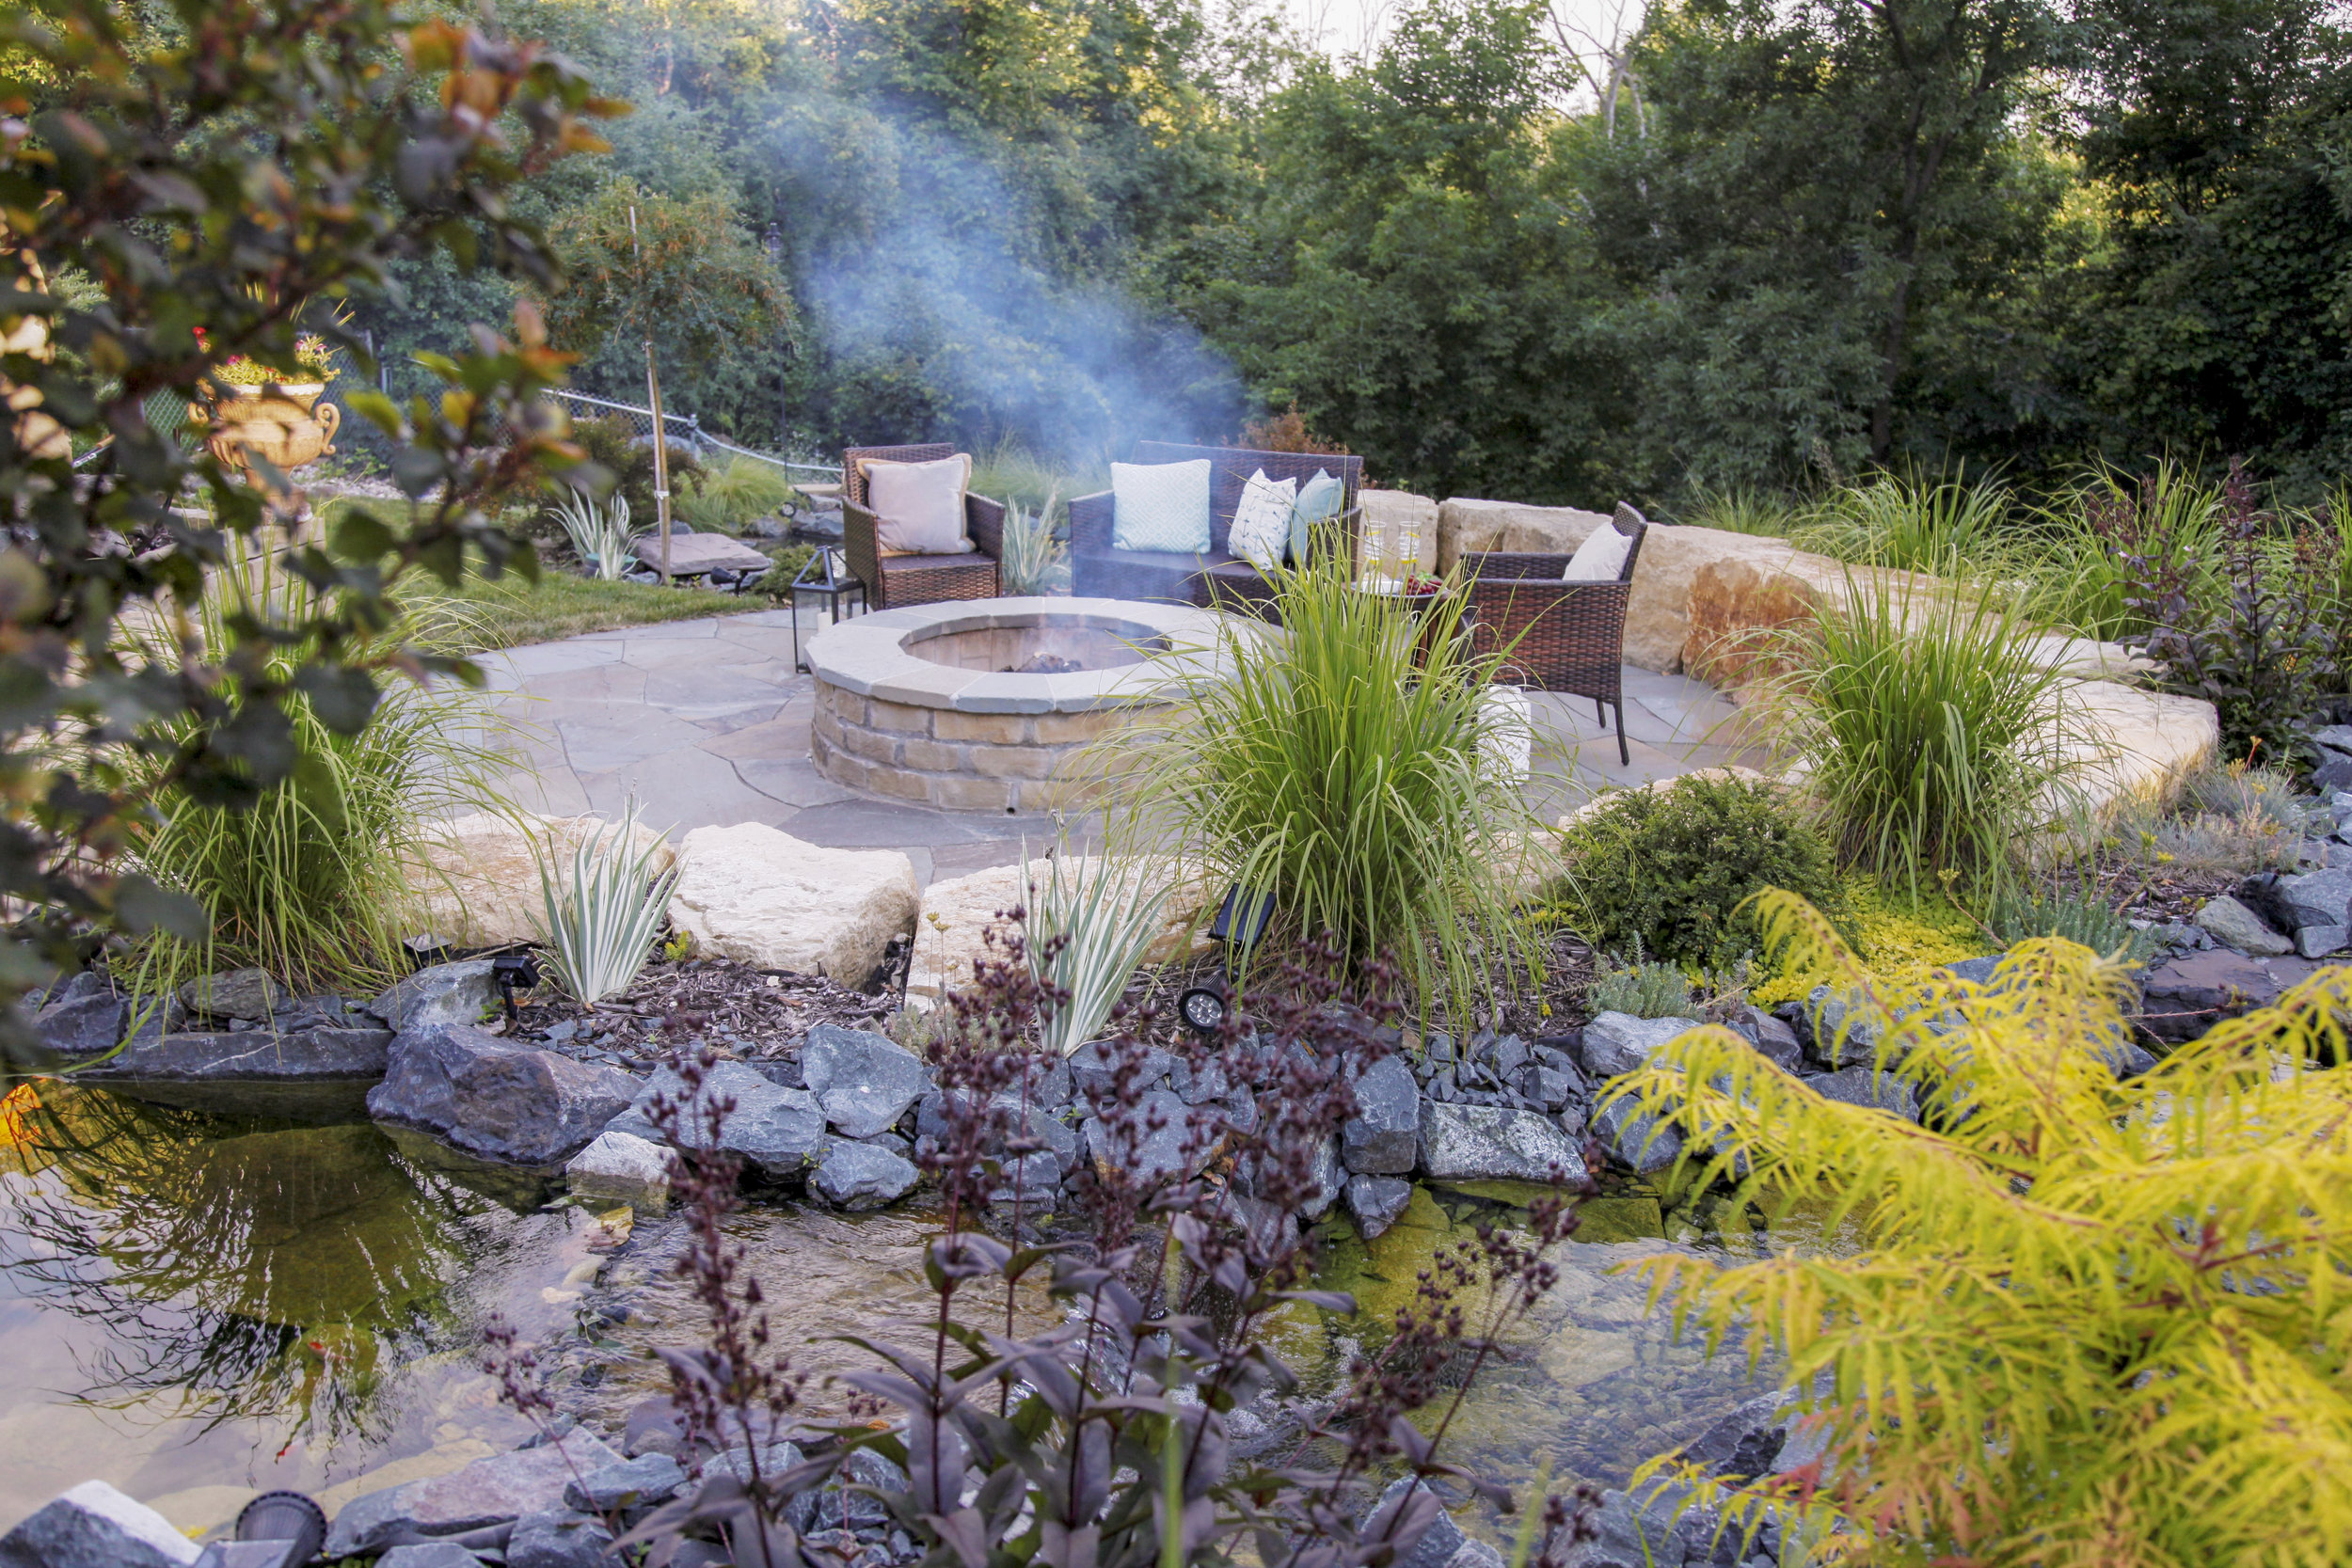 Moms Design Build - Water Feature Water Plants Fire Pit.jpg